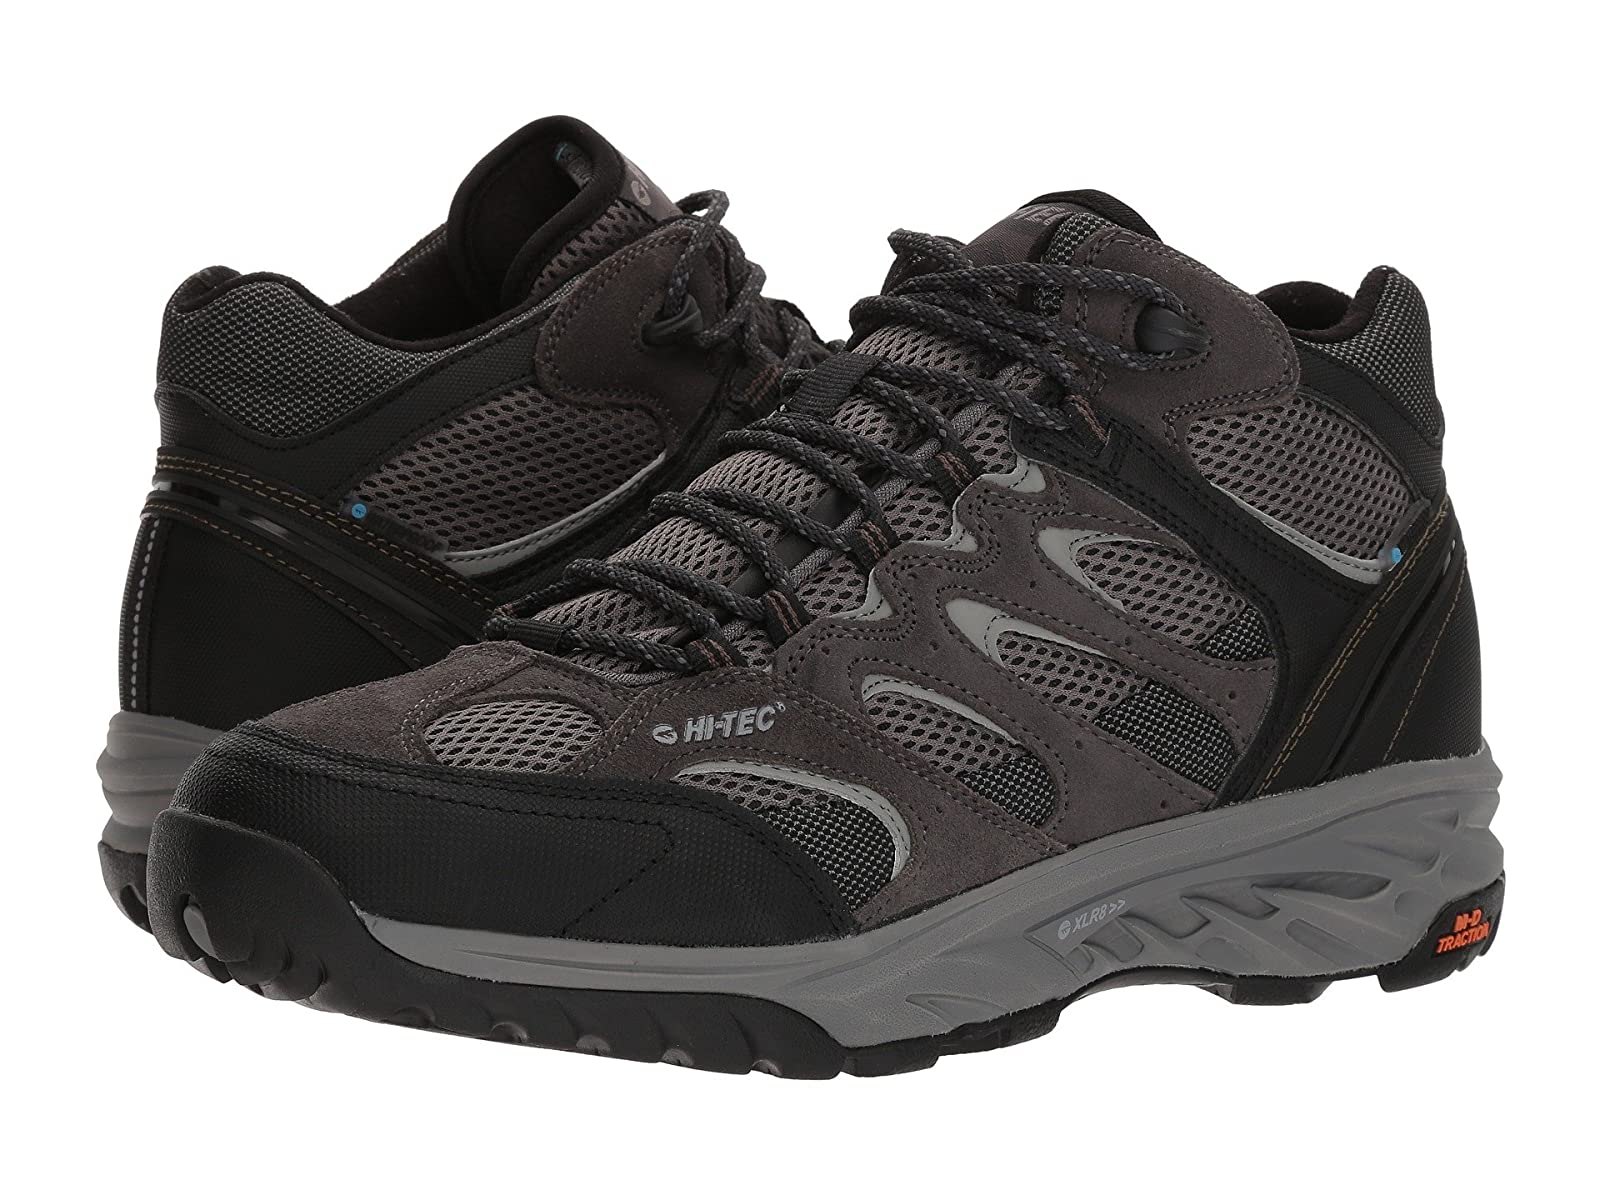 Hi-Tec V-Lite Wildfire Mid I WaterproofAffordable and distinctive shoes